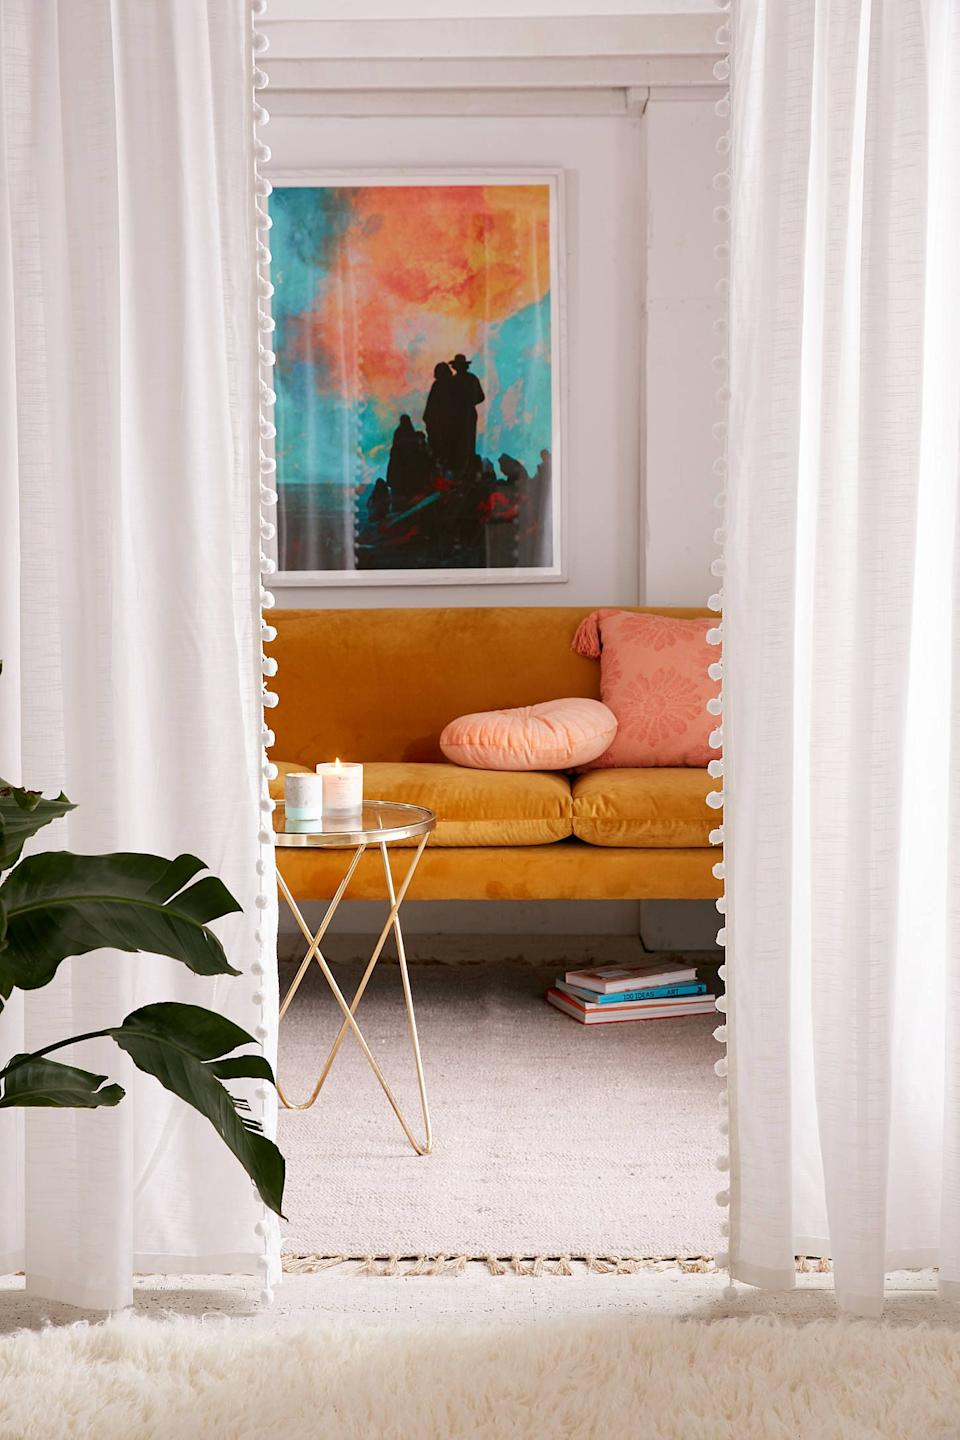 """<h3><a href=""""https://www.urbanoutfitters.com/shop/pompom-curtain"""" rel=""""nofollow noopener"""" target=""""_blank"""" data-ylk=""""slk:Urban Outfitters Pompom Curtain"""" class=""""link rapid-noclick-resp"""">Urban Outfitters Pompom Curtain</a> </h3><p>Fasten a window rod to open door frames or room ceilings and hang a pair of translucent curtains for a breezy room separation solution.</p><br><br><strong>Urban Outfitters</strong> Pompom Curtain, $69, available at <a href=""""https://www.urbanoutfitters.com/shop/pompom-curtain"""" rel=""""nofollow noopener"""" target=""""_blank"""" data-ylk=""""slk:Urban Outfitters"""" class=""""link rapid-noclick-resp"""">Urban Outfitters</a>"""